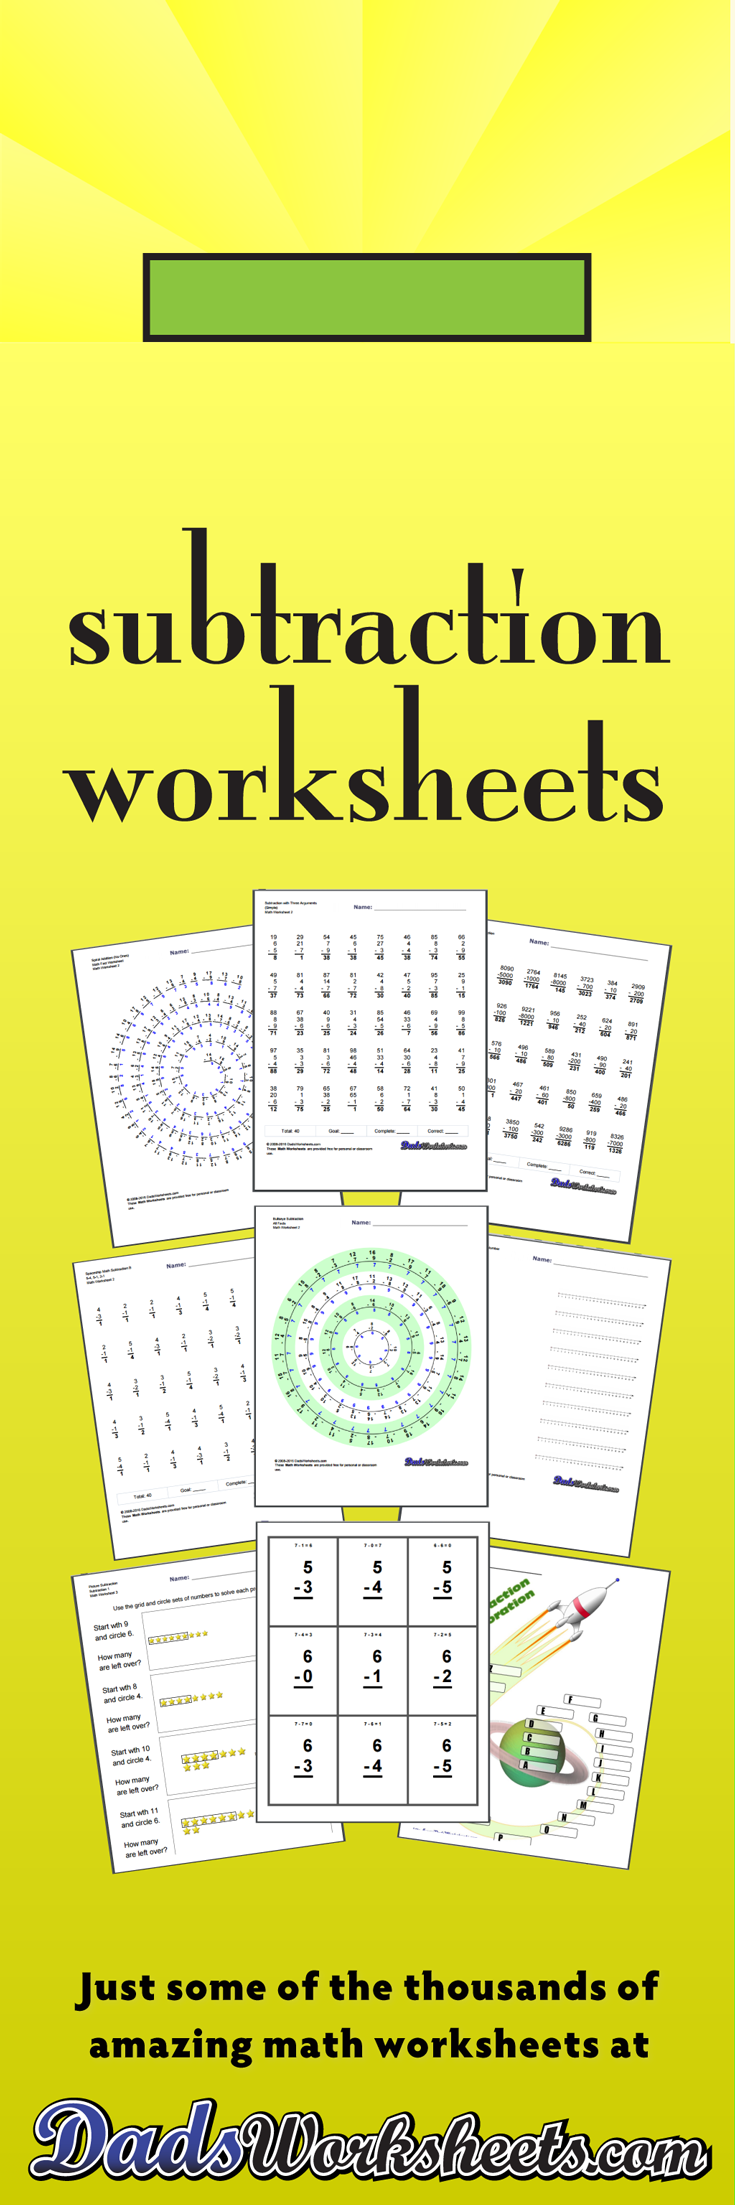 small resolution of Printable Subtraction Worksheets with Answer Keys! Timed tests